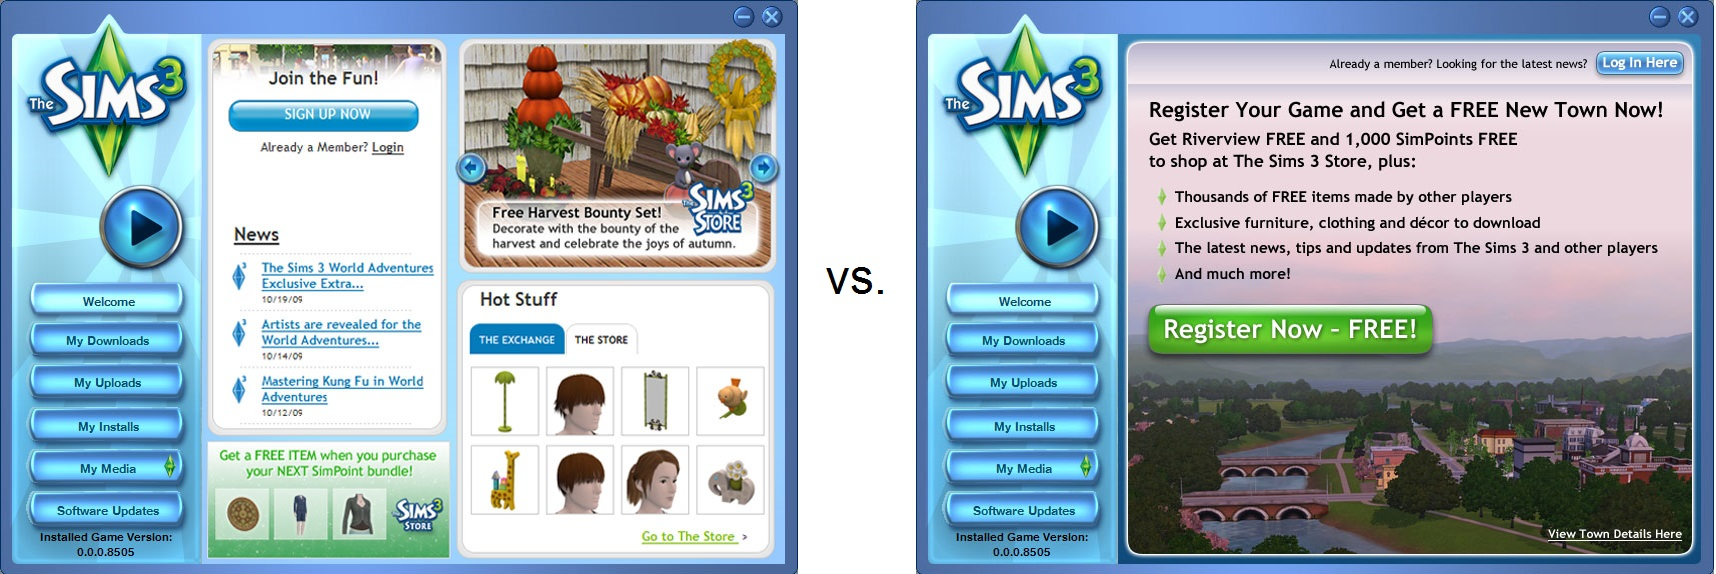 The Sims 3 A/B Testing